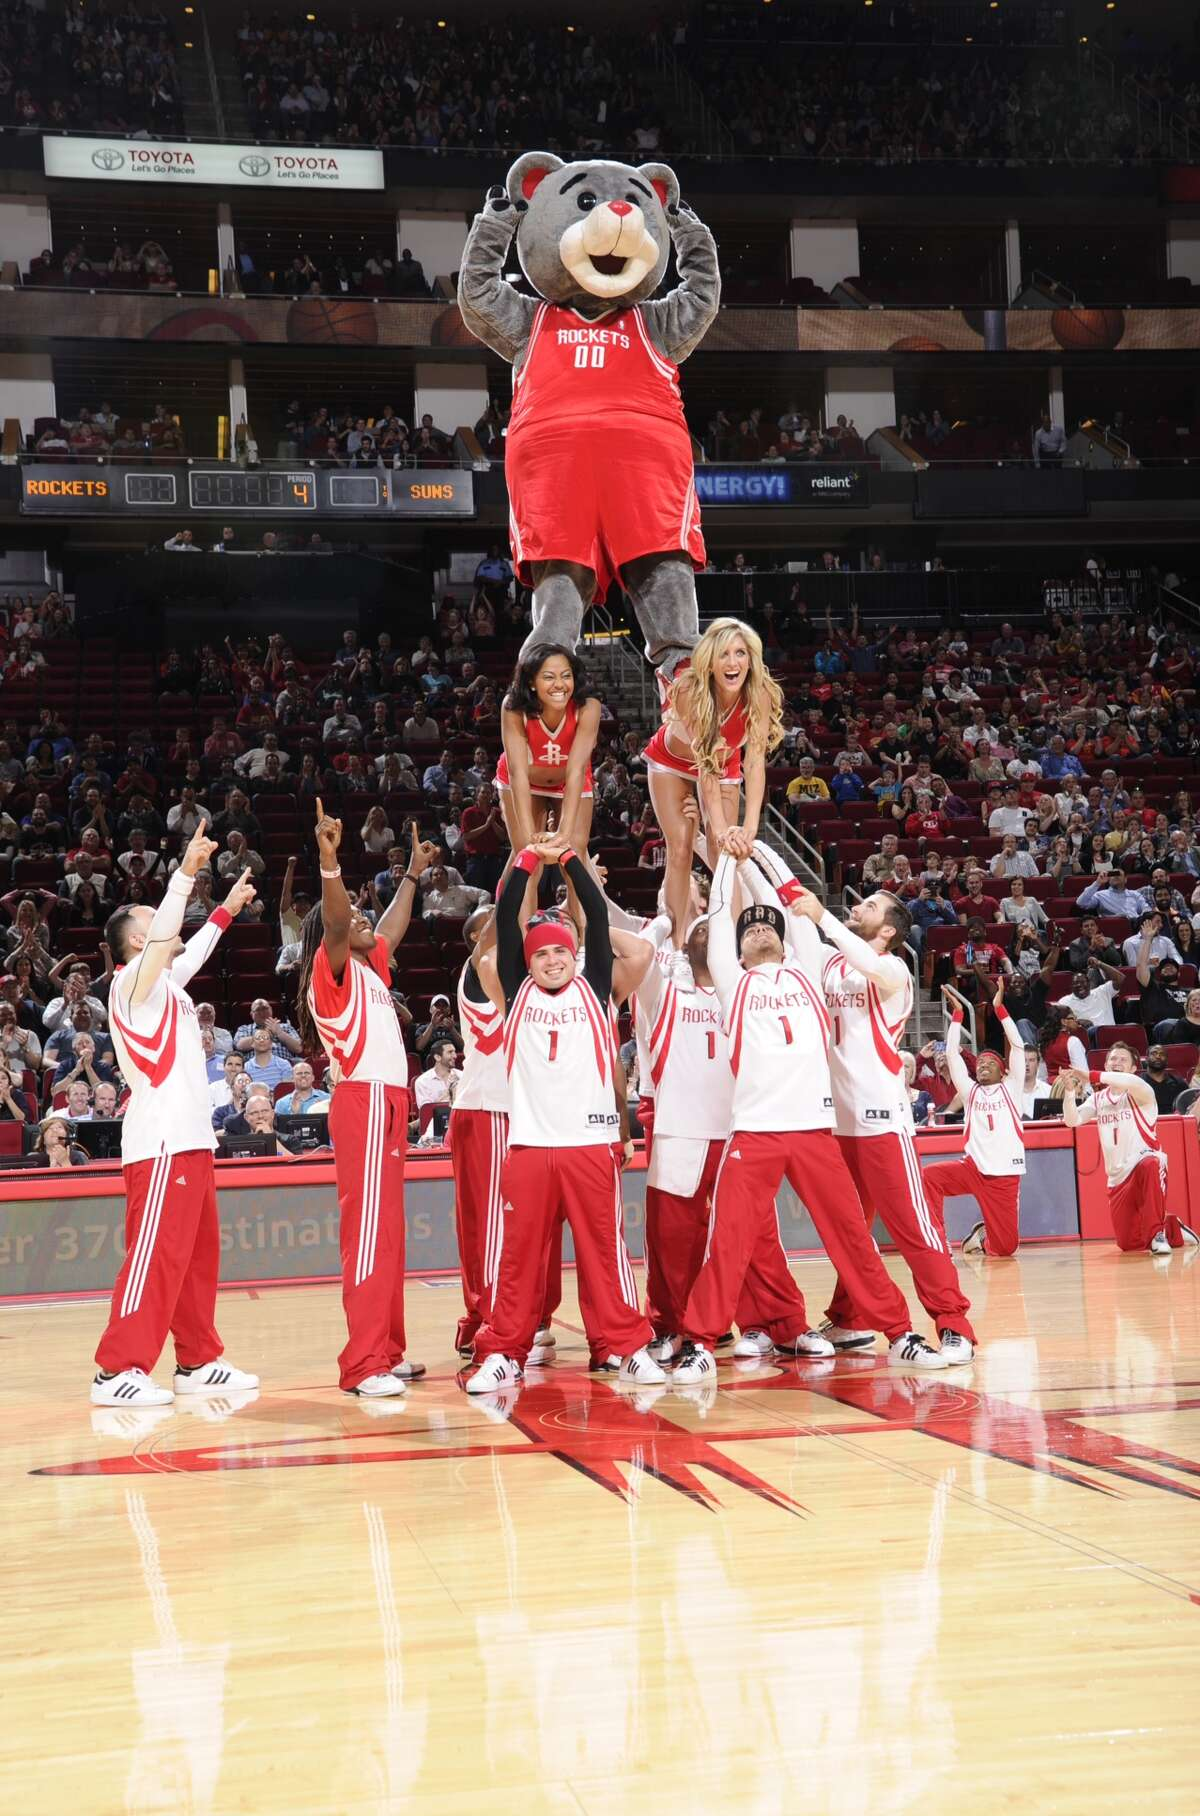 Clutch at the top of the pyramid at a Rockets game. HOUSTON, TX - MARCH 13: The Launch Crew and Clutch Mascot of the Houston Rockets perform during the game against the Phoenix Suns on March 13, 2013 at the Toyota Center in Houston, Texas. NOTE TO USER: User expressly acknowledges and agrees that, by downloading and or using this photograph, User is consenting to the terms and conditions of the Getty Images License Agreement. Mandatory Copyright Notice: Copyright 2013 NBAE (Photo by Bill Baptist/NBAE via Getty Images)